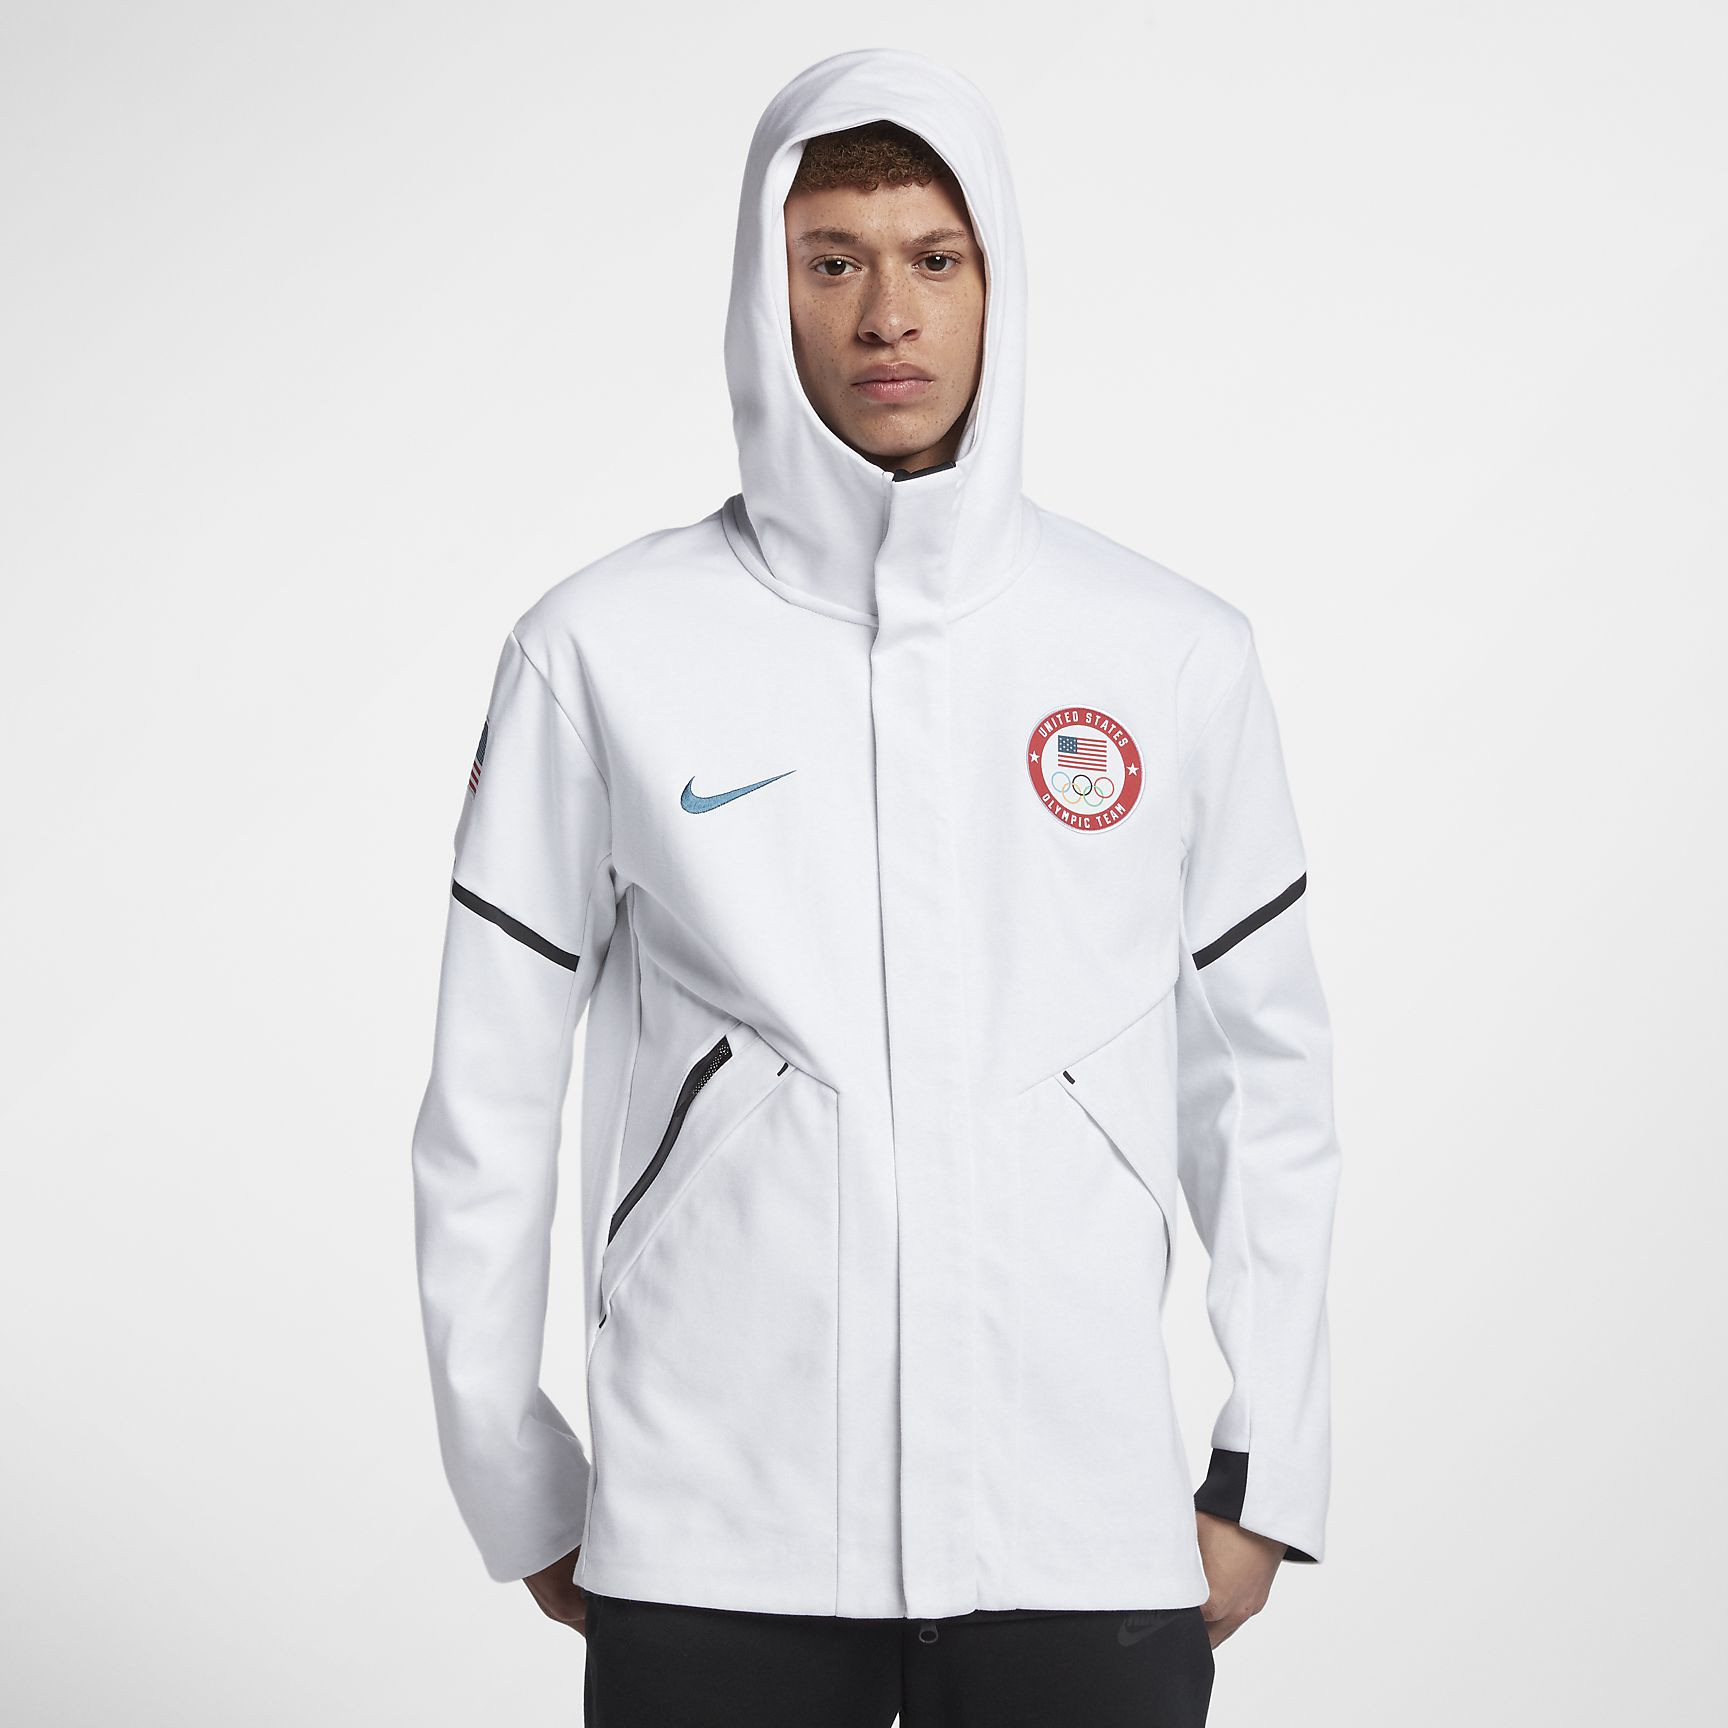 Nike Tech Fleece Team USA Windrunner Men's Jacket $275